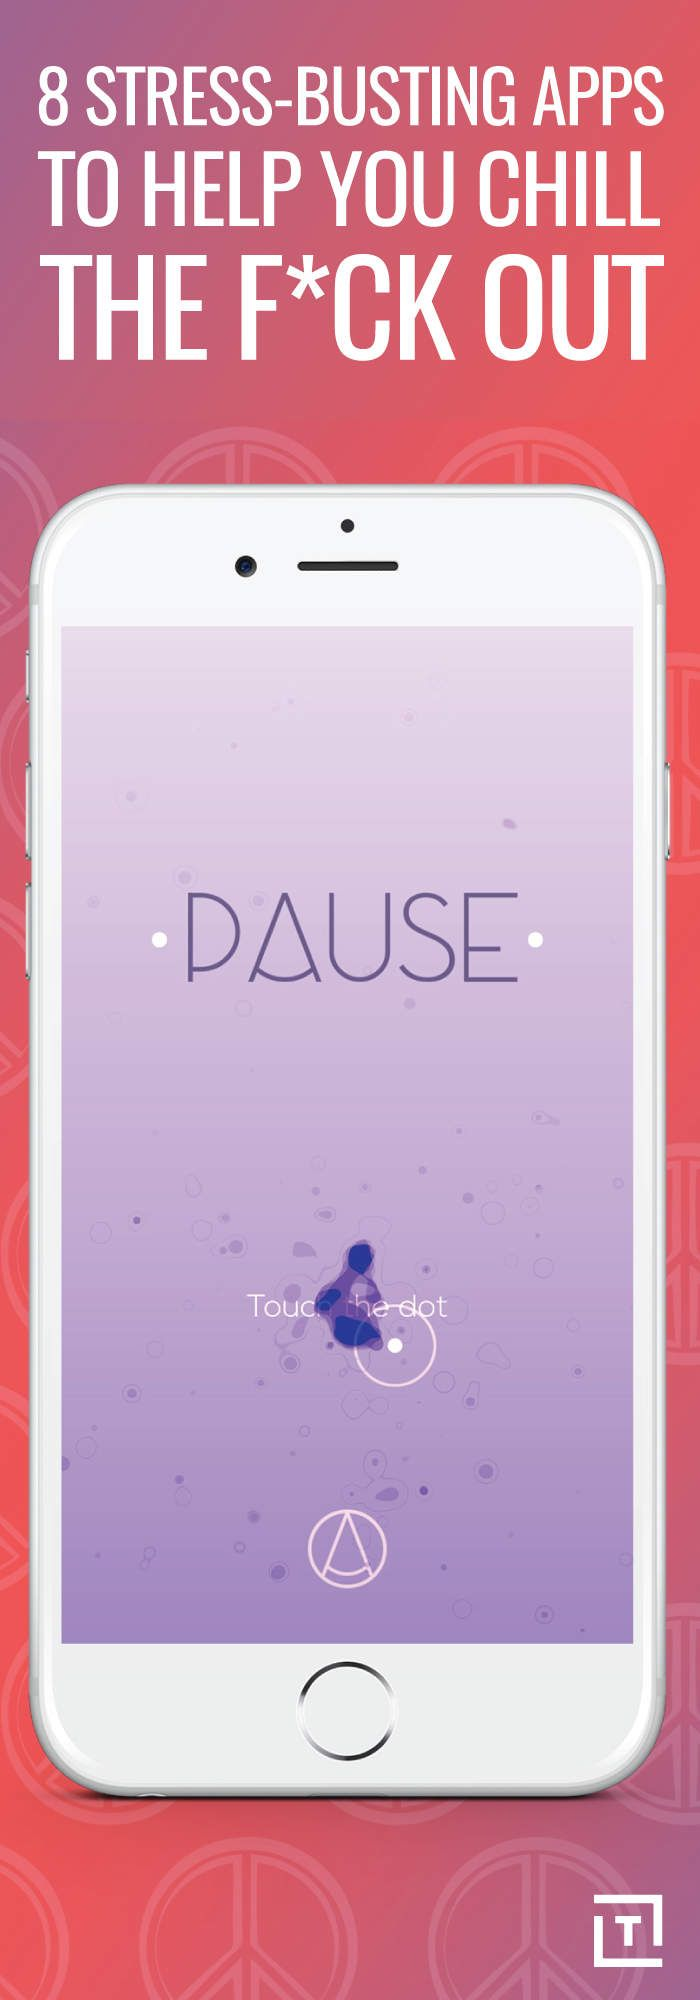 Fashion week Stress app for pause for woman